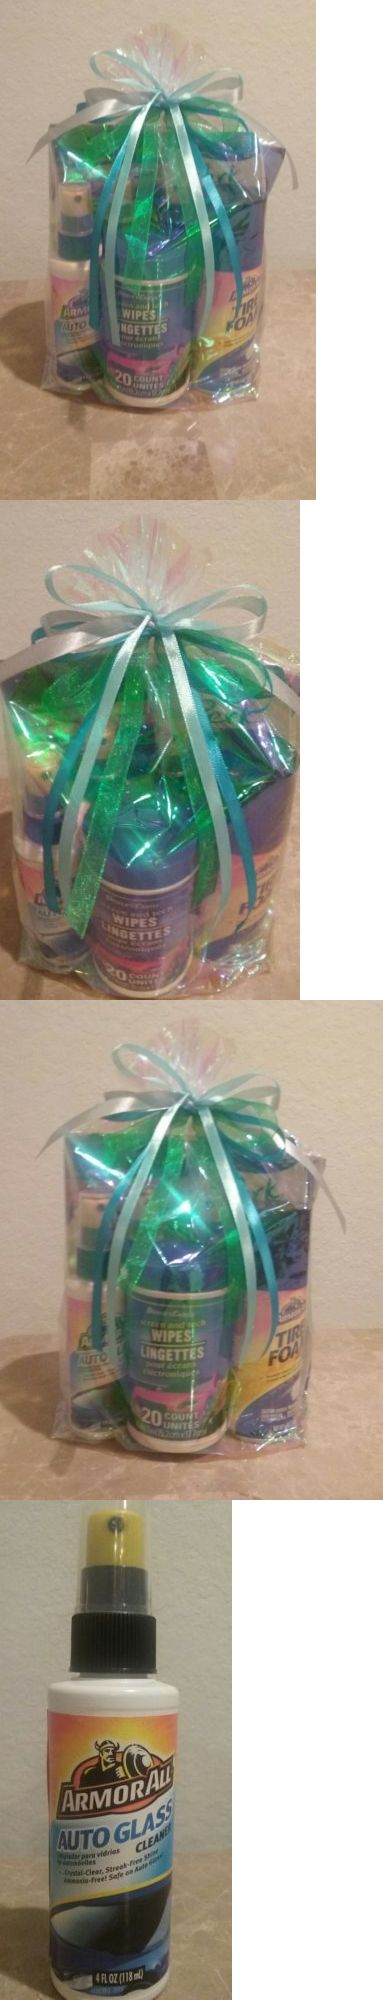 Gift Baskets and Supplies 16091: Mens Gift Set, Mens Gift,Mens Gift Basket,Gift For Him,Gift For Dad, Gift -> BUY IT NOW ONLY: $31.99 on eBay!